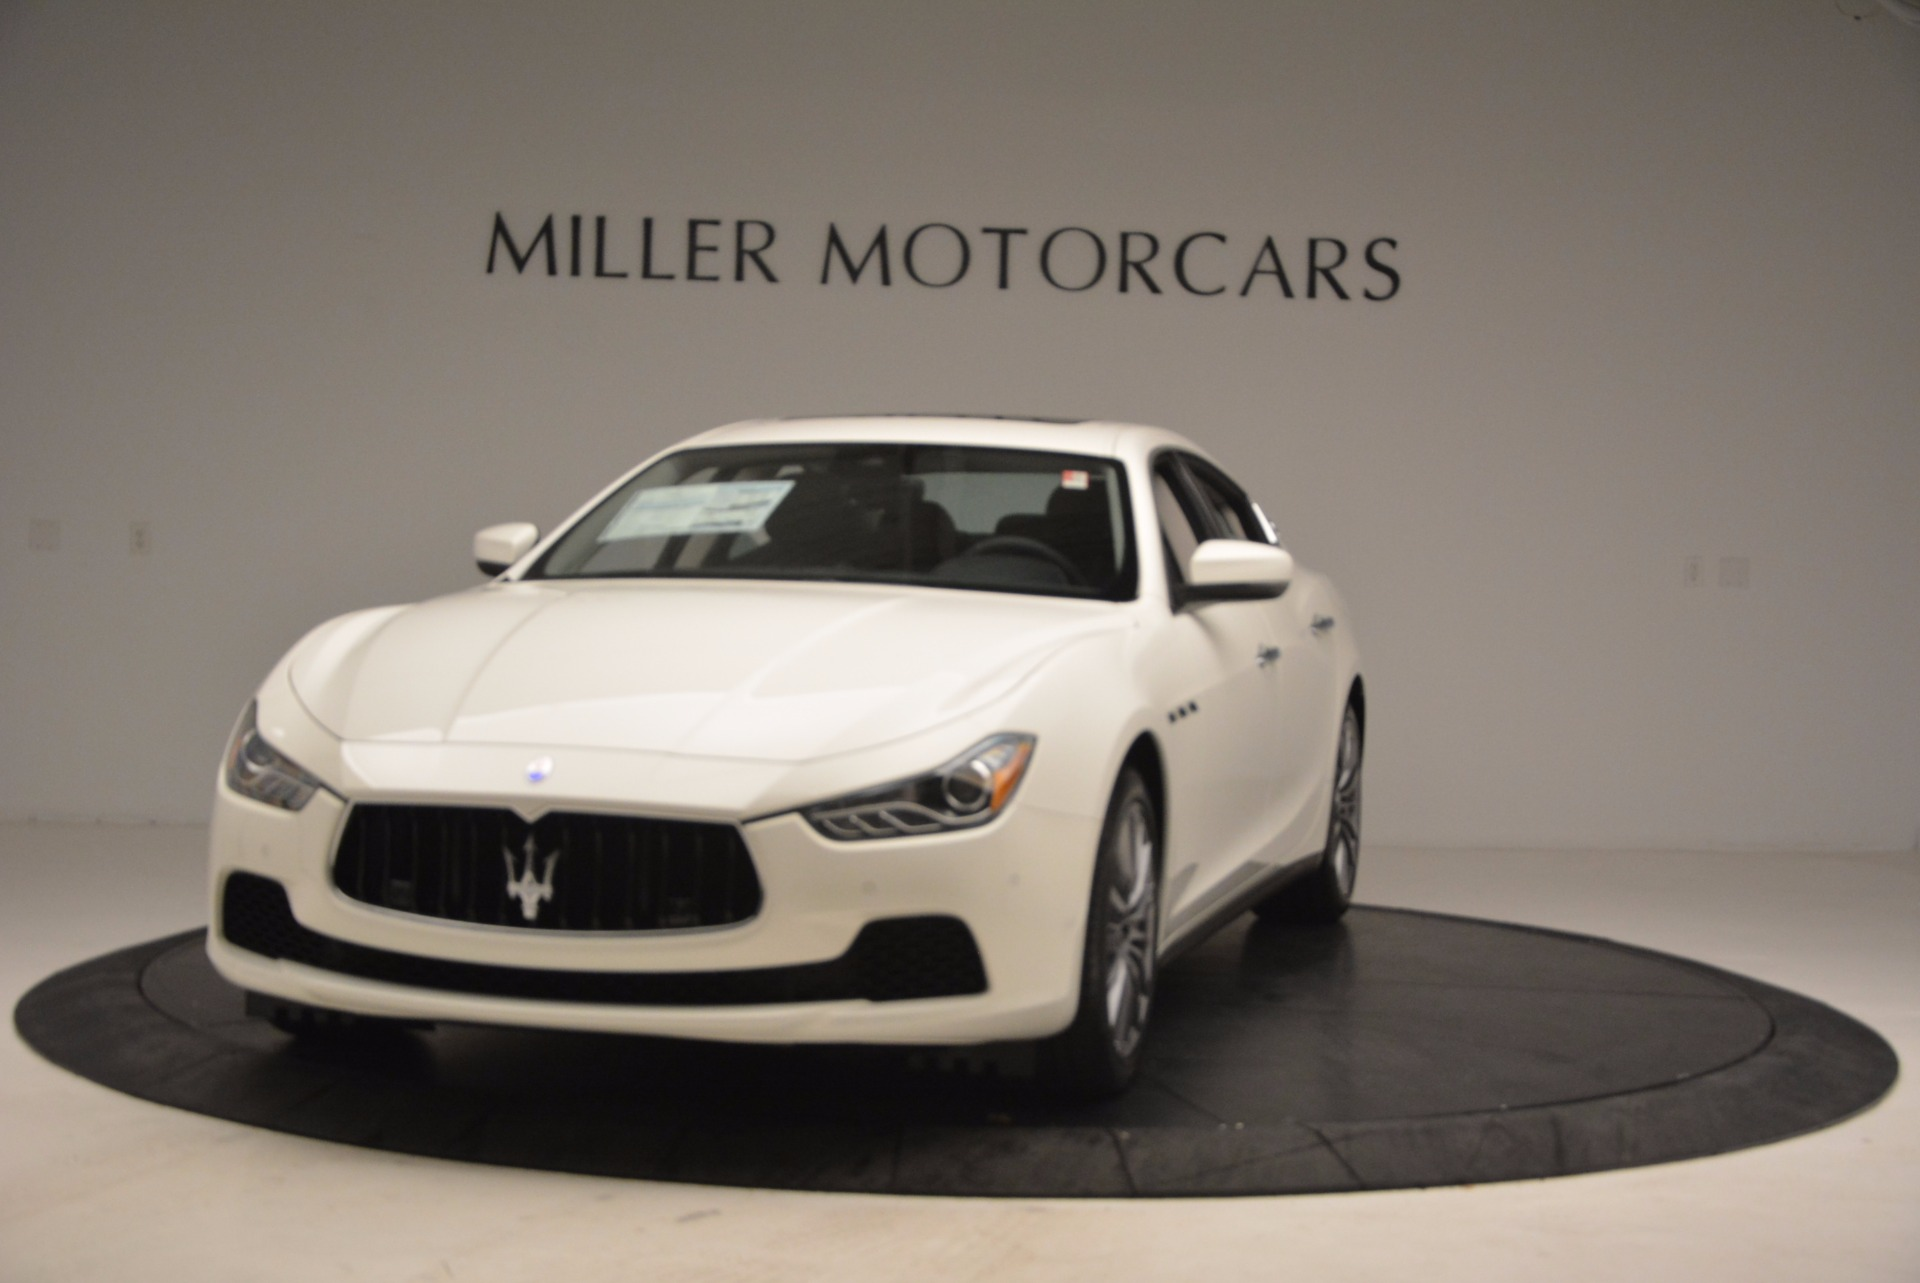 New 2017 Maserati Ghibli S Q4 EX-Loaner for sale Sold at Bugatti of Greenwich in Greenwich CT 06830 1